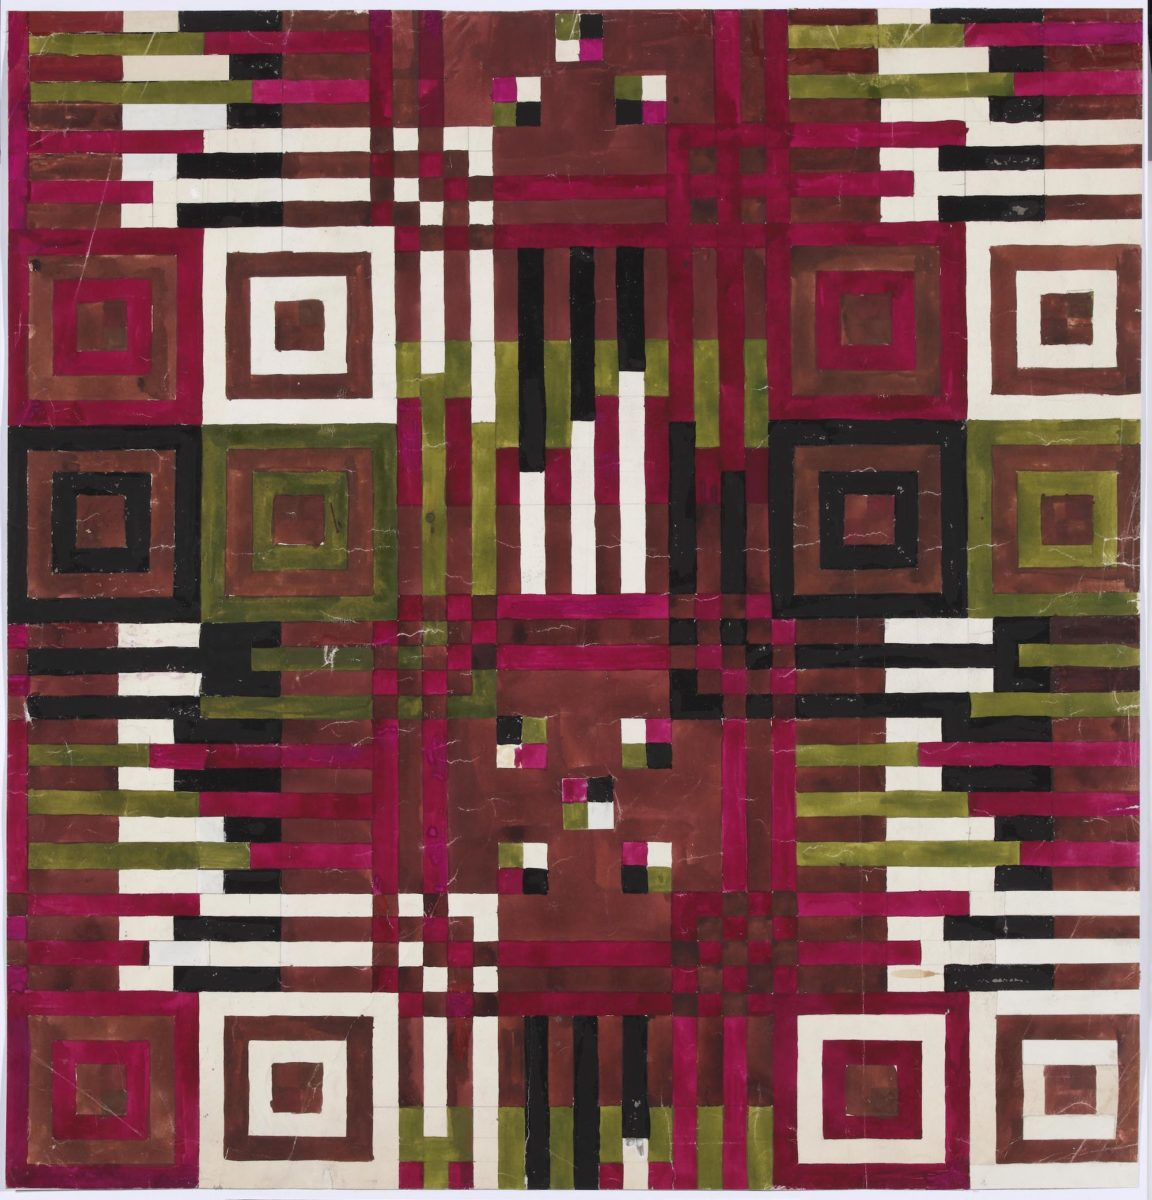 'Cybernetics' (1972) (2) [private collection]